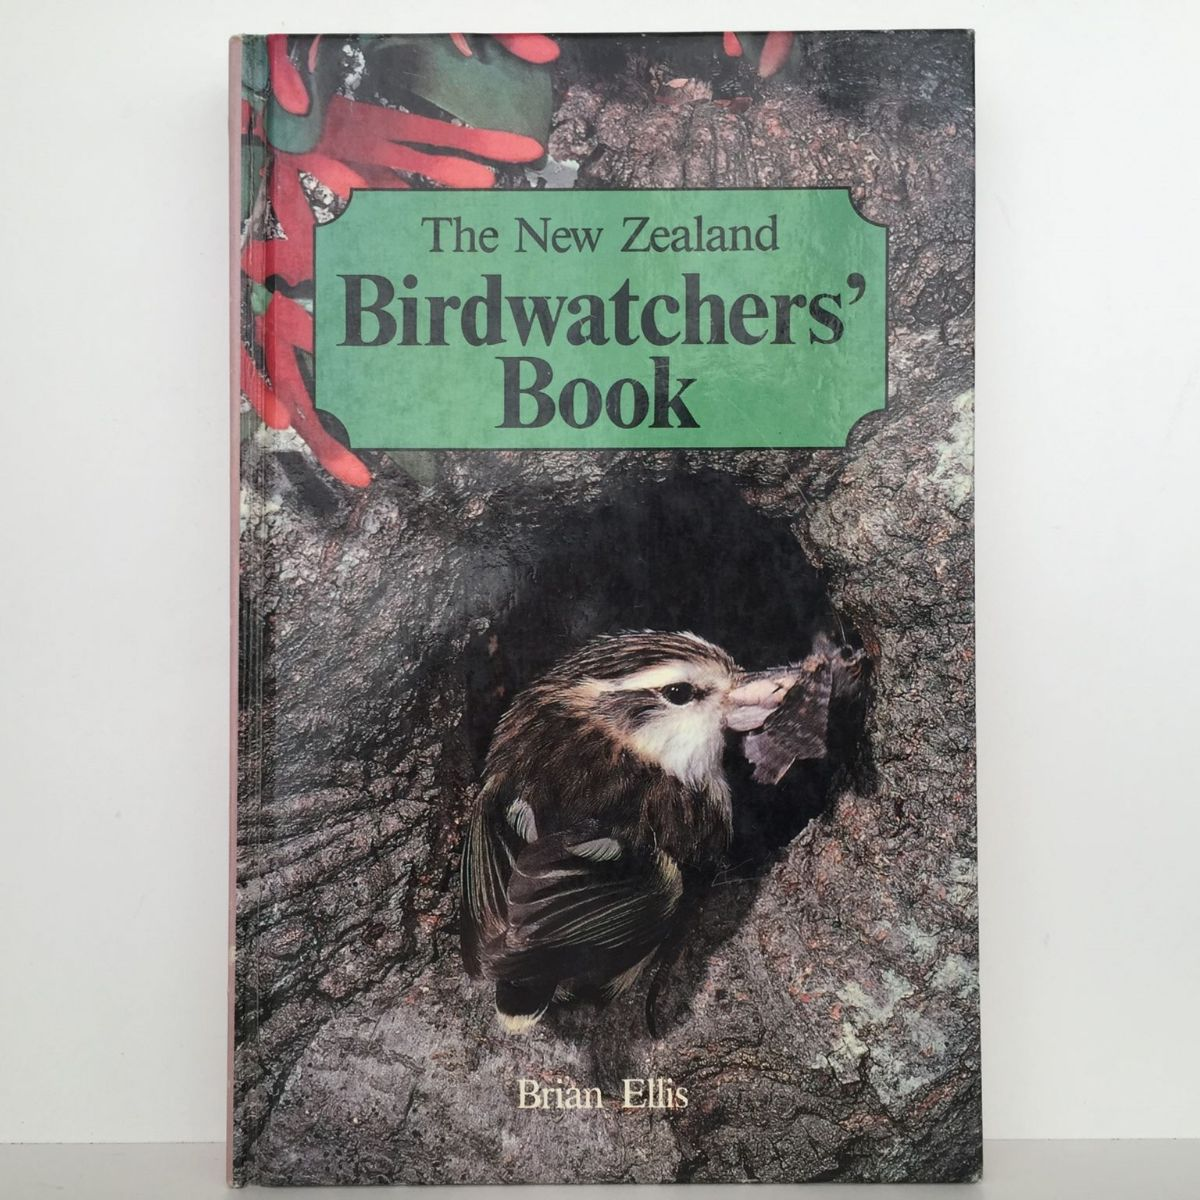 The New Zealand Birdwatchers' Book